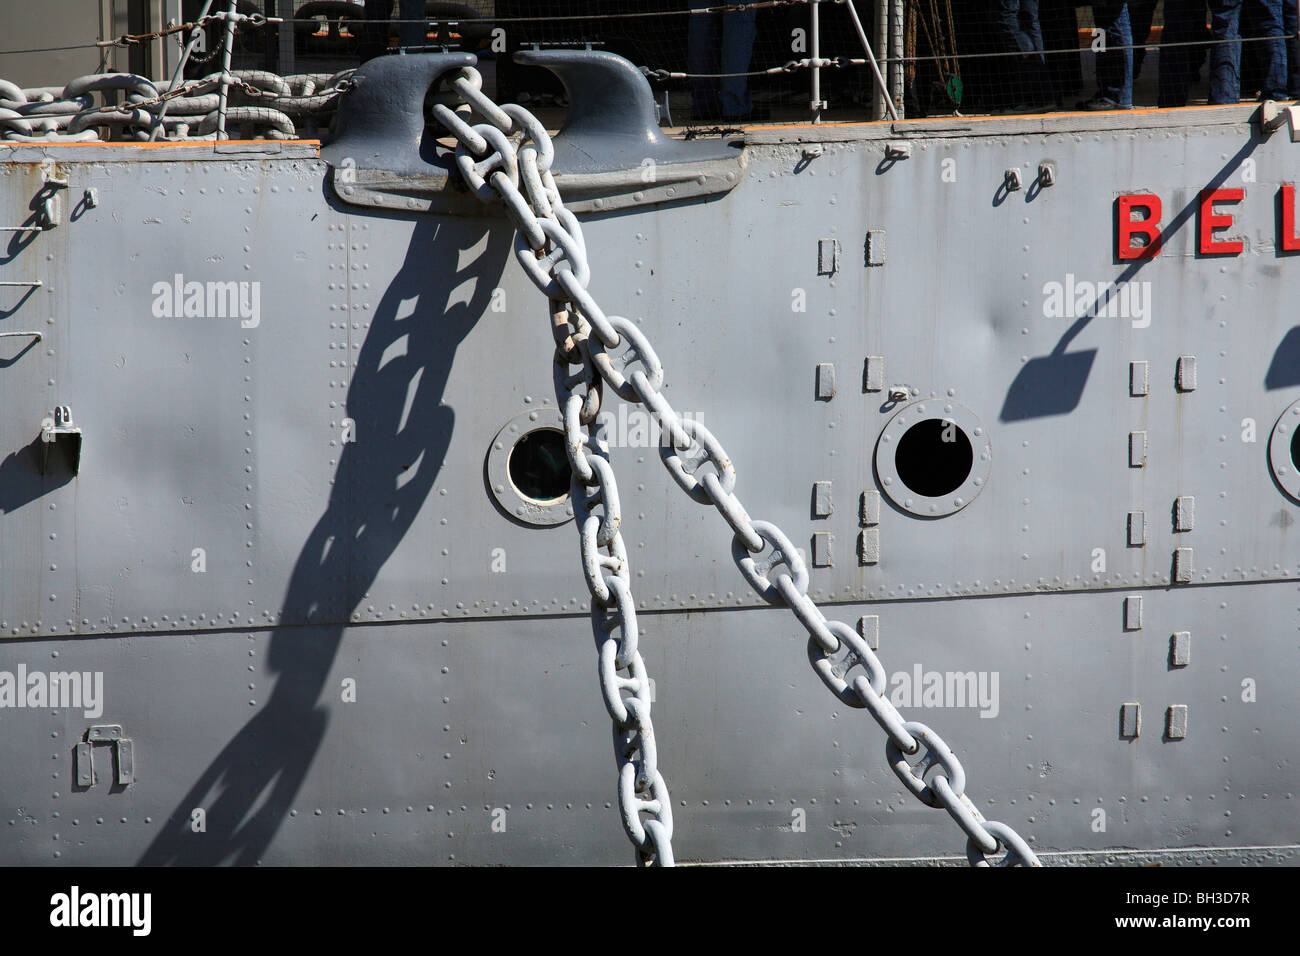 HMS Belfast, anchor chain and portholes. Moored on River Thames between London and Tower bridge's. Battleship - Stock Image